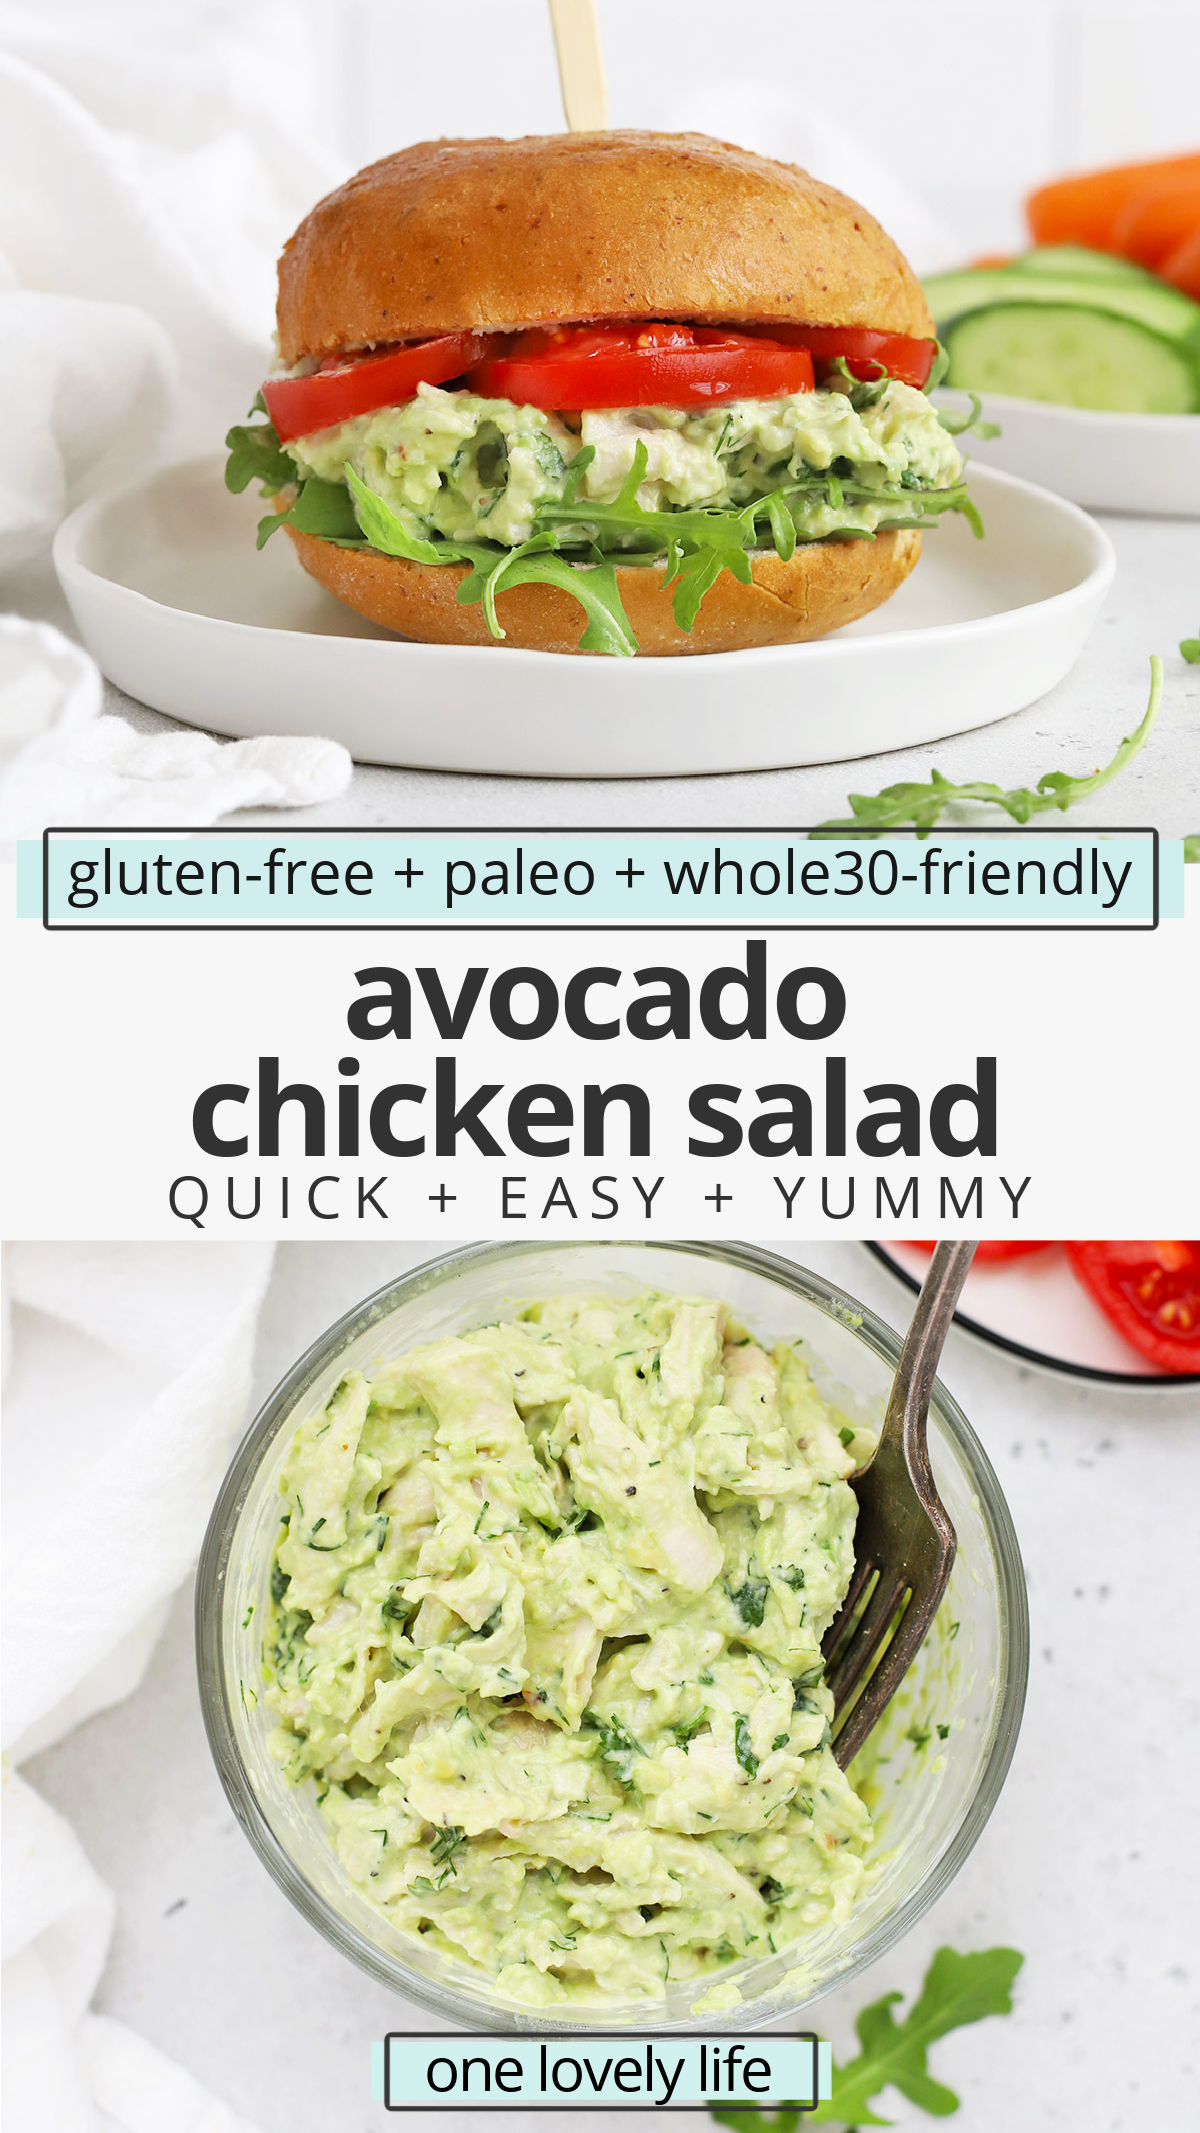 Avocado Chicken Salad - Tender chicken with creamy avocado sauce makes a delicious healthy lunch any day of the week! Try it on sandwiches, with crackers, in lettuce cups, and more! (Gluten-Free, Paleo, Whole30-Friendly) // Healthy Meal Prep Lunch // Whole30 Lunch // Paleo Lunch // Chicken Salad Recipe #glutenfree #mealprep #avocado #chickensalad #lunch #healthylunch